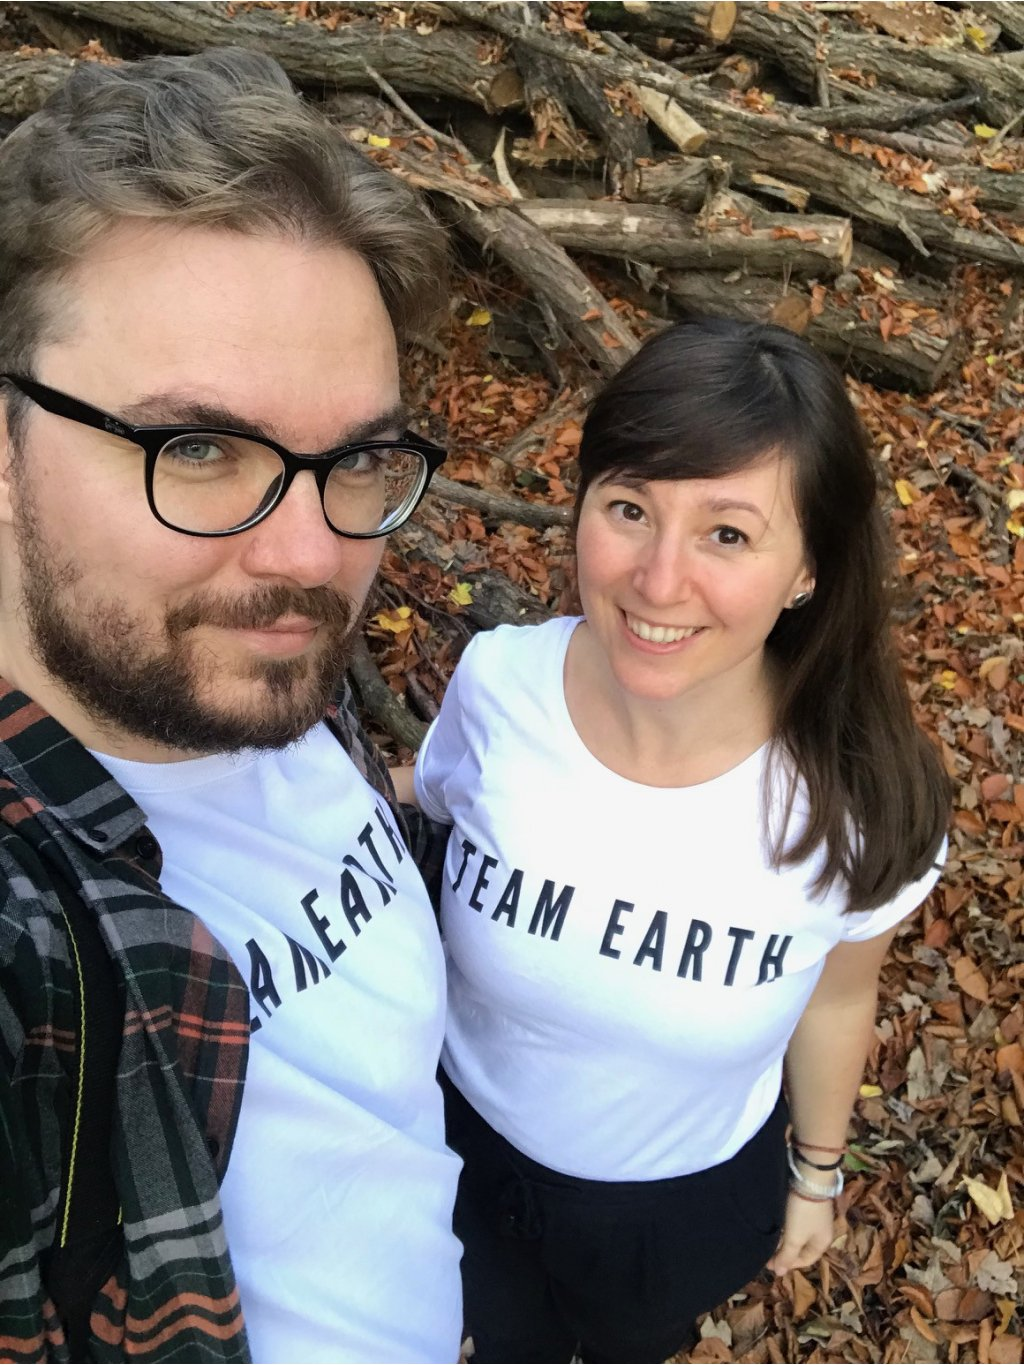 Team Earth unisex